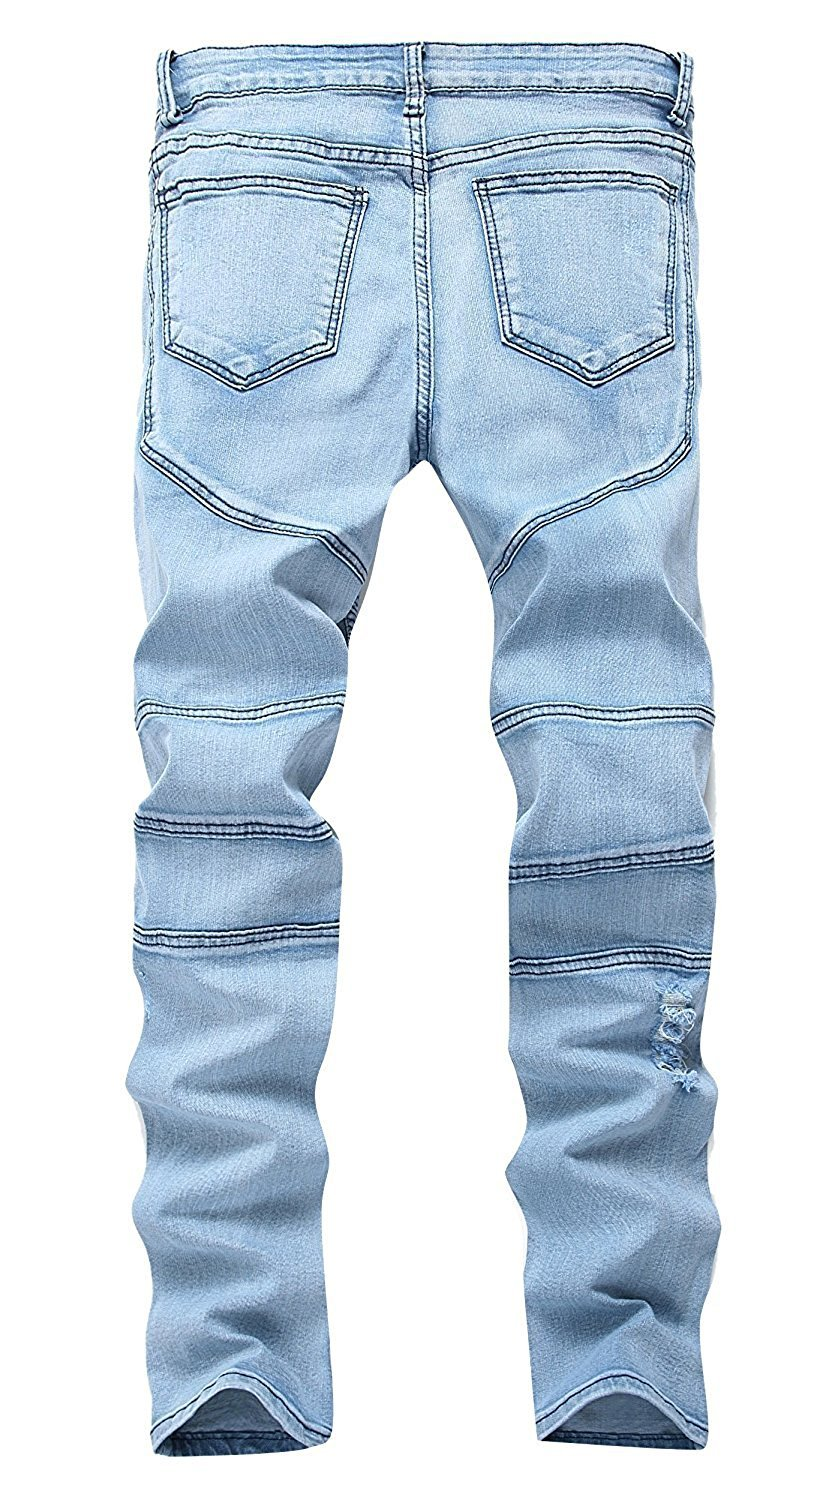 TOPING Fine Handsome Men's Blue Skinny Ripped Destroyed Distressed Straight Slim Tapered Leg Jeans 606blueW32